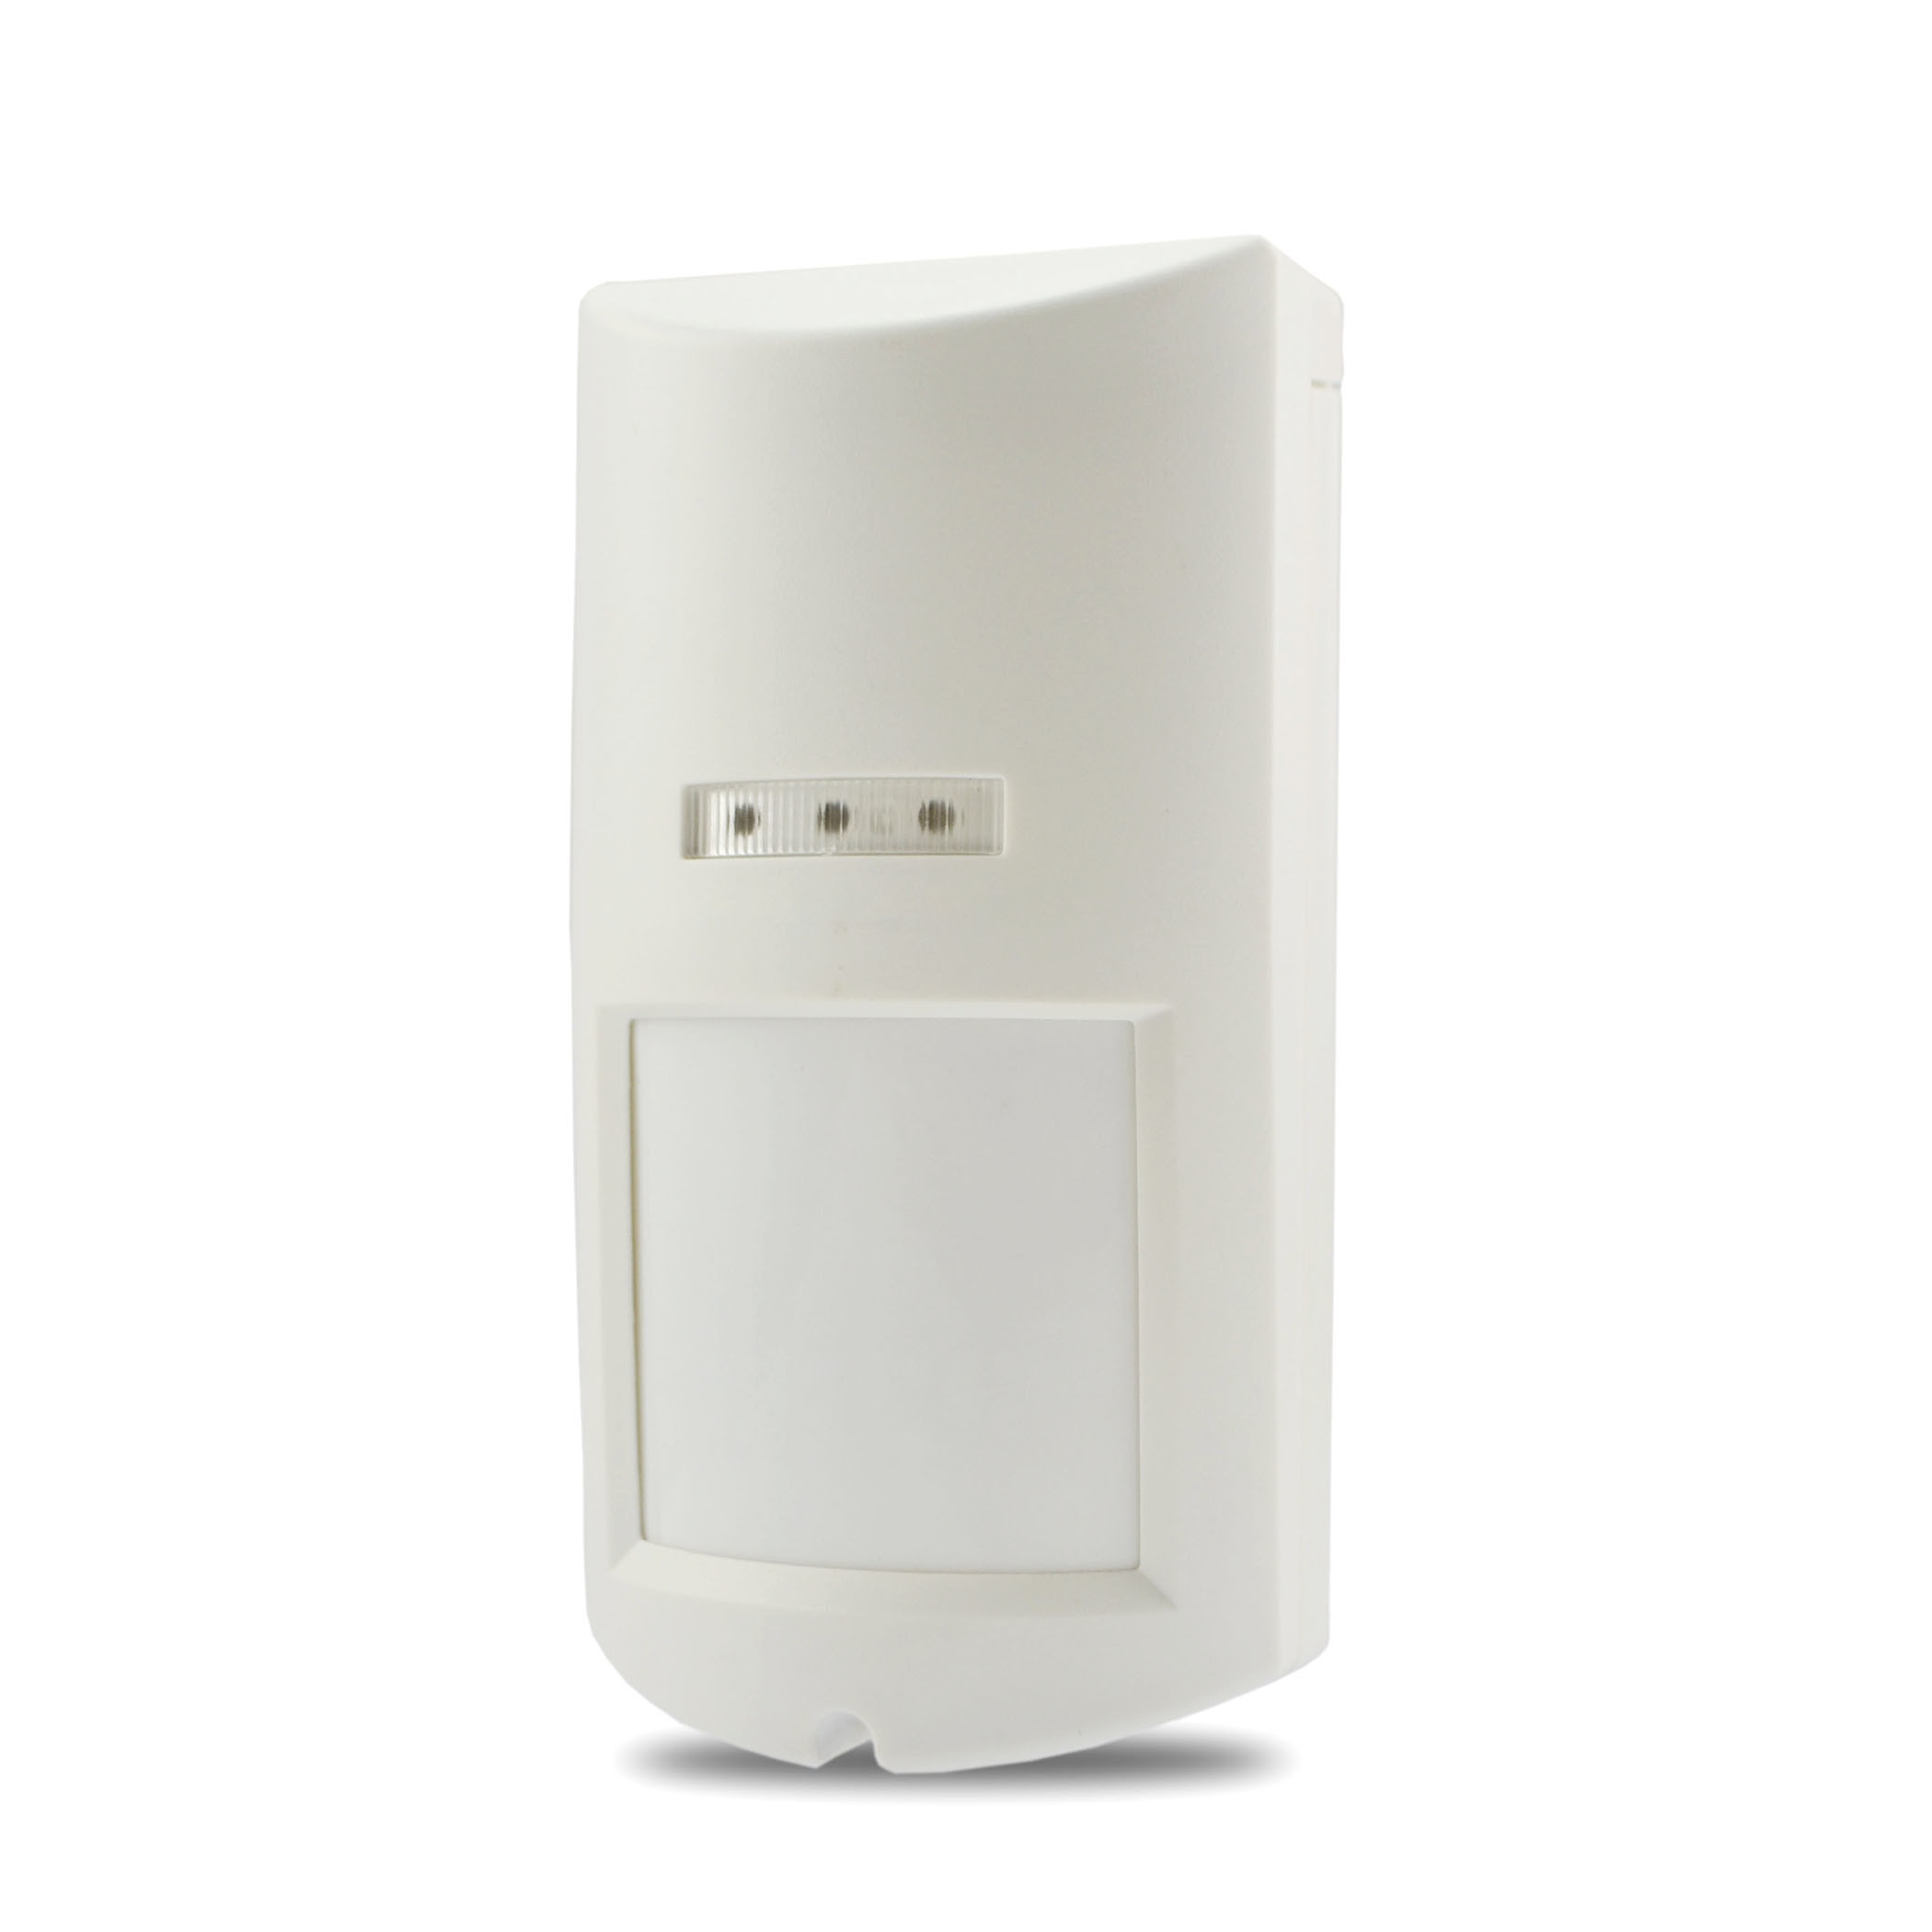 Outdoor Wireless PIR Motion Detector with Pet Immunity